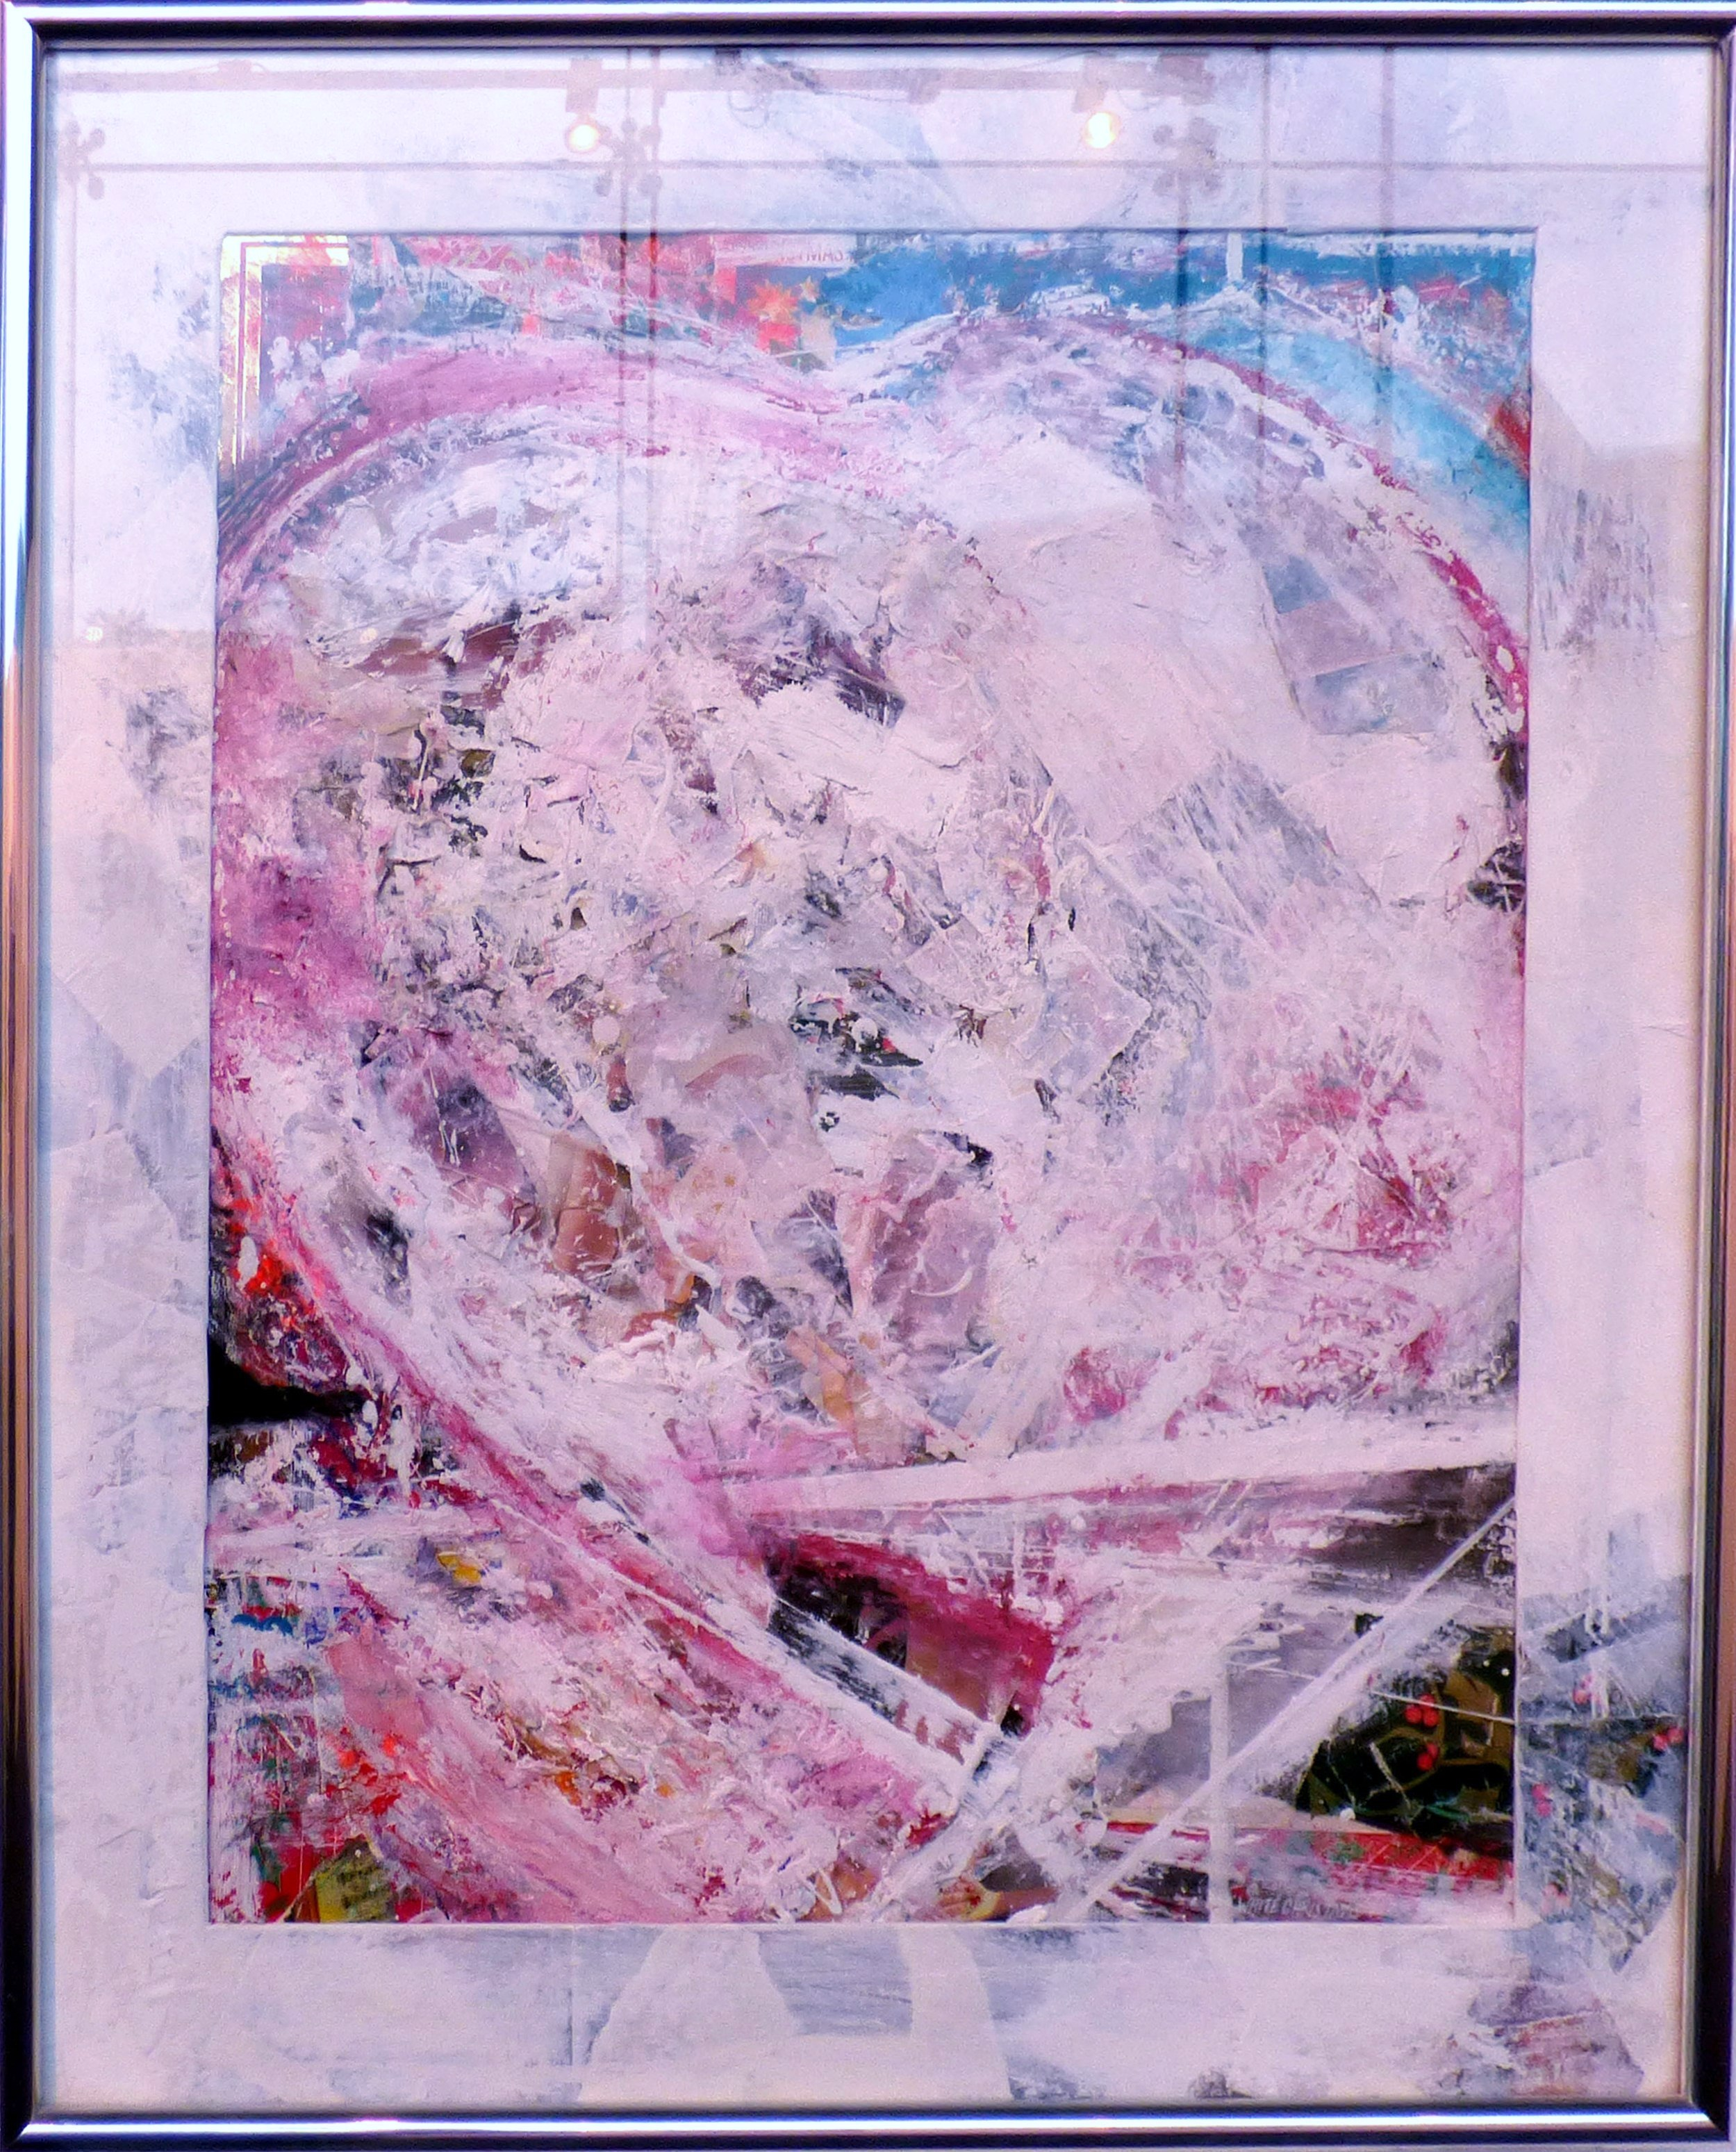 WHITE CHRISTMAS by Paul Cousins, mixed media. From The Heart exhibition, St Helens, Feb 2020